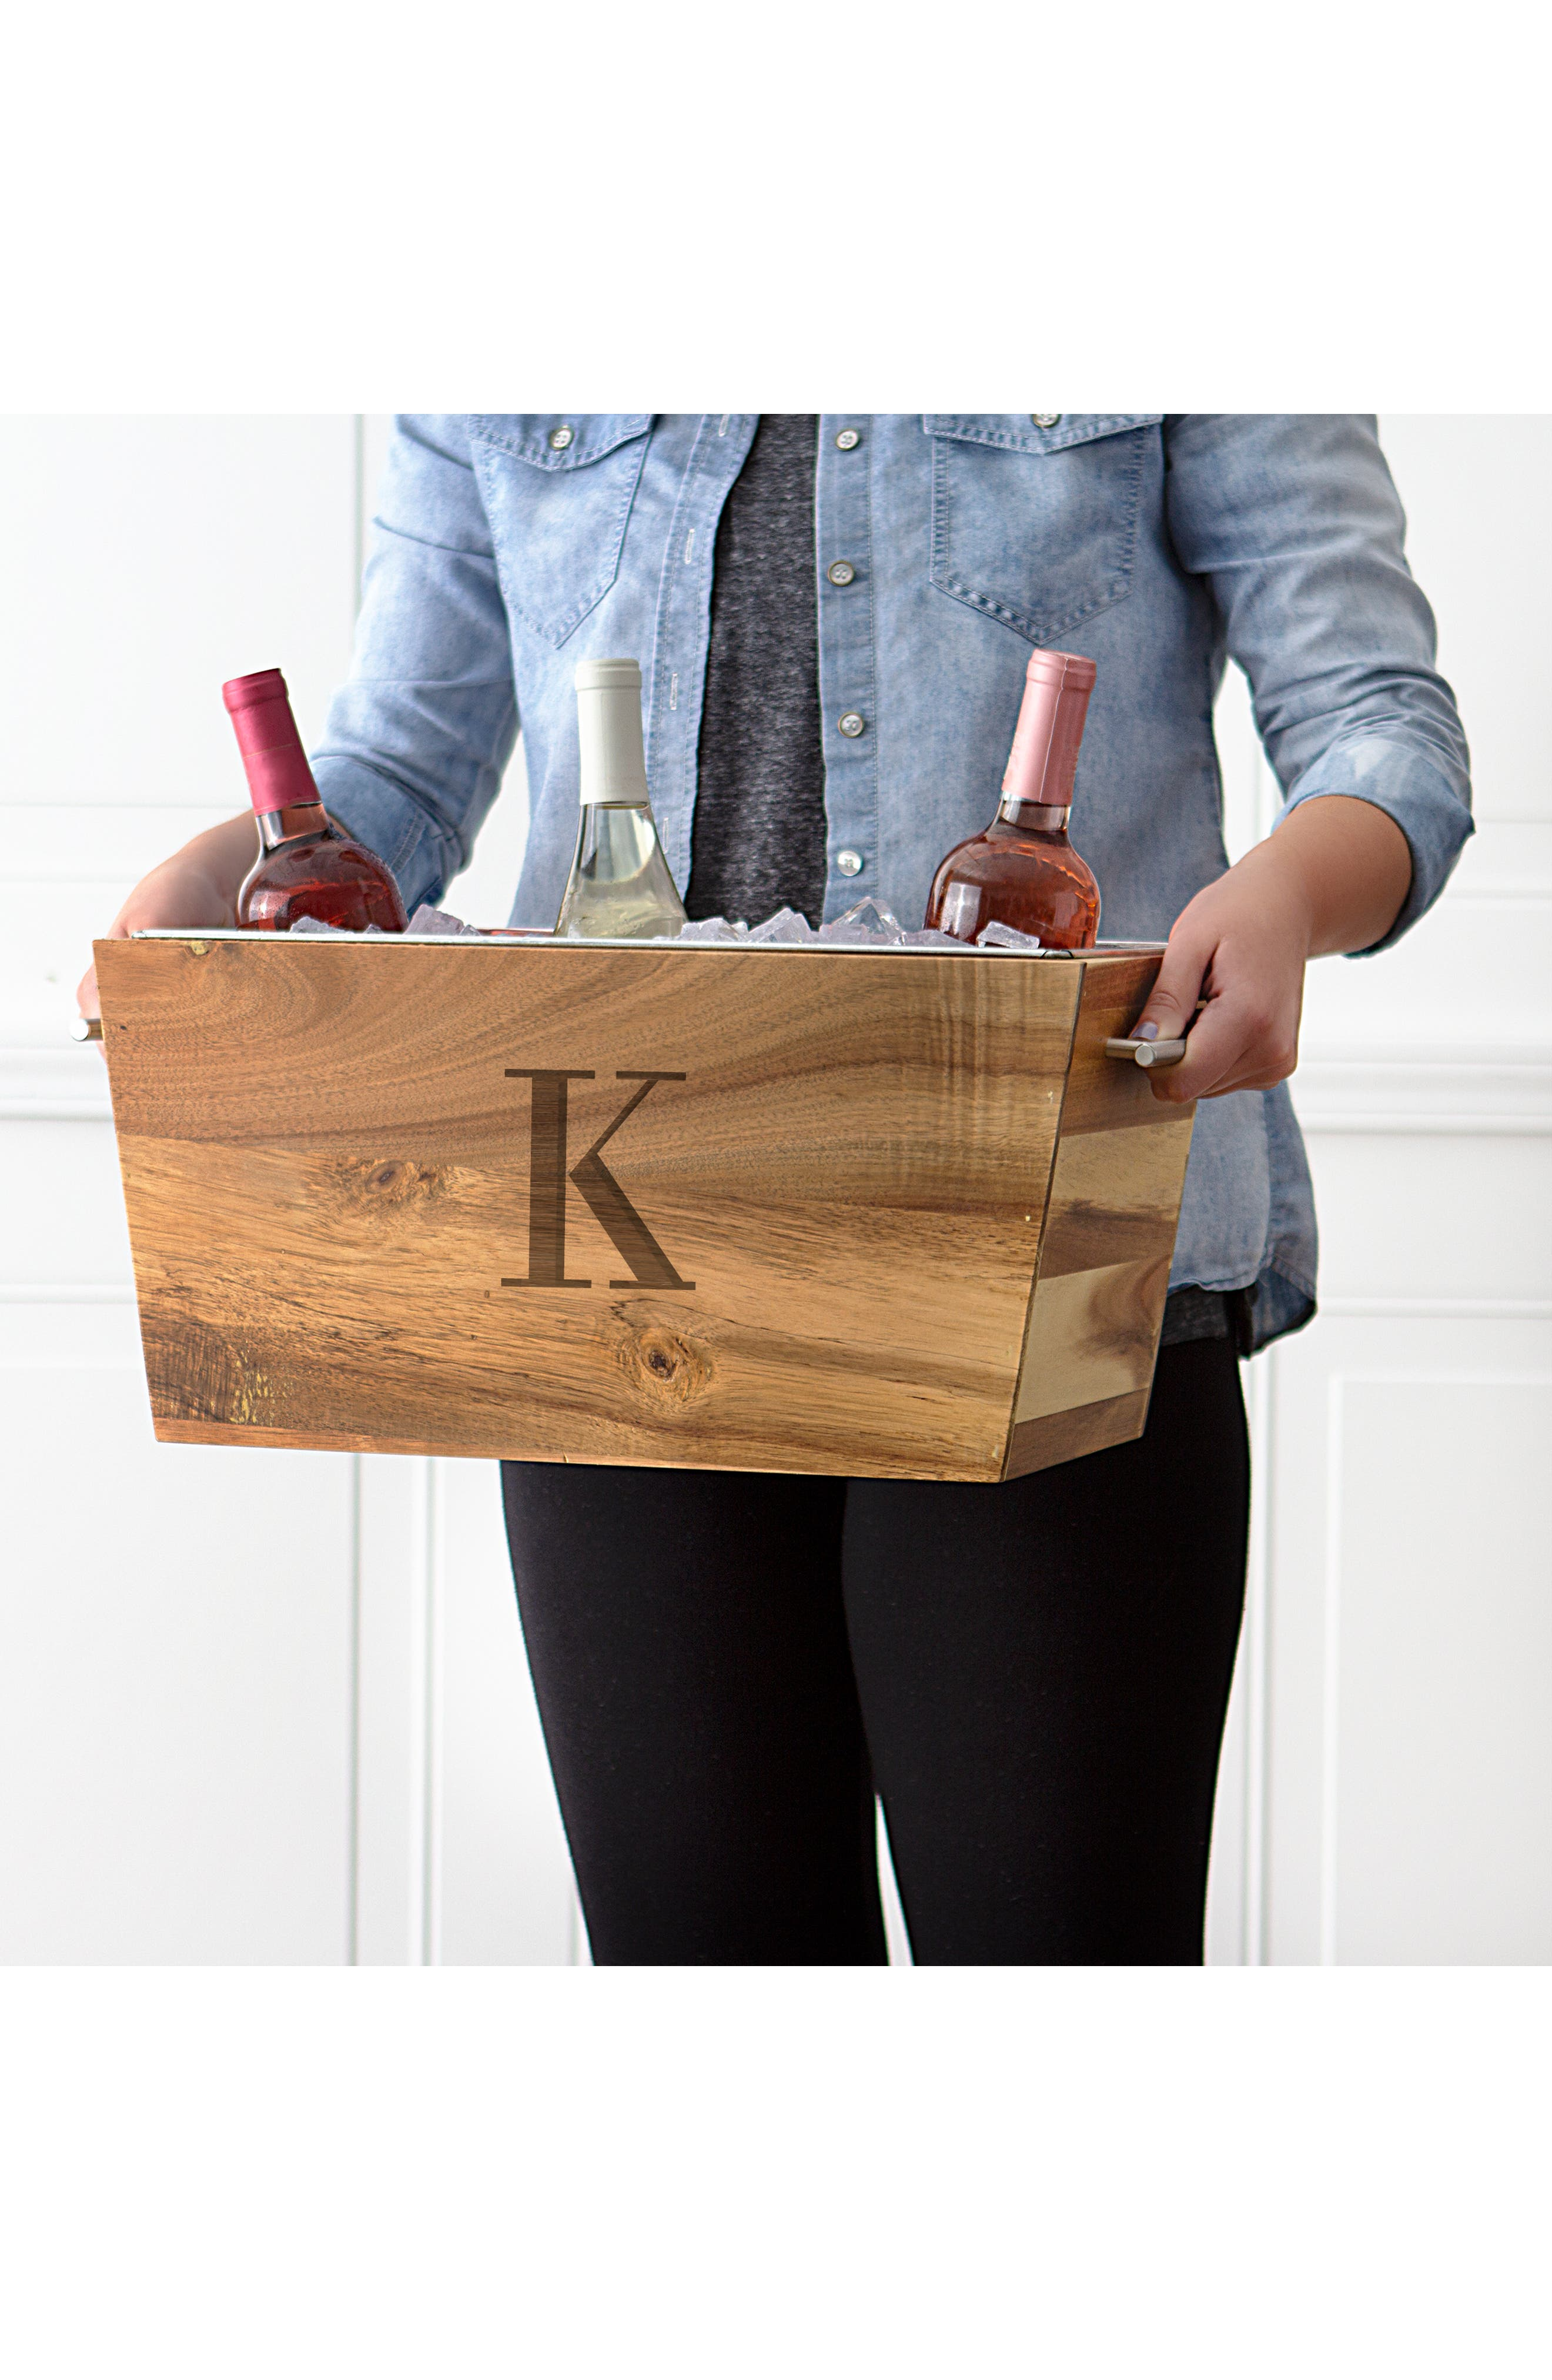 Monogram Wood Beverage Trough,                             Alternate thumbnail 3, color,                             200